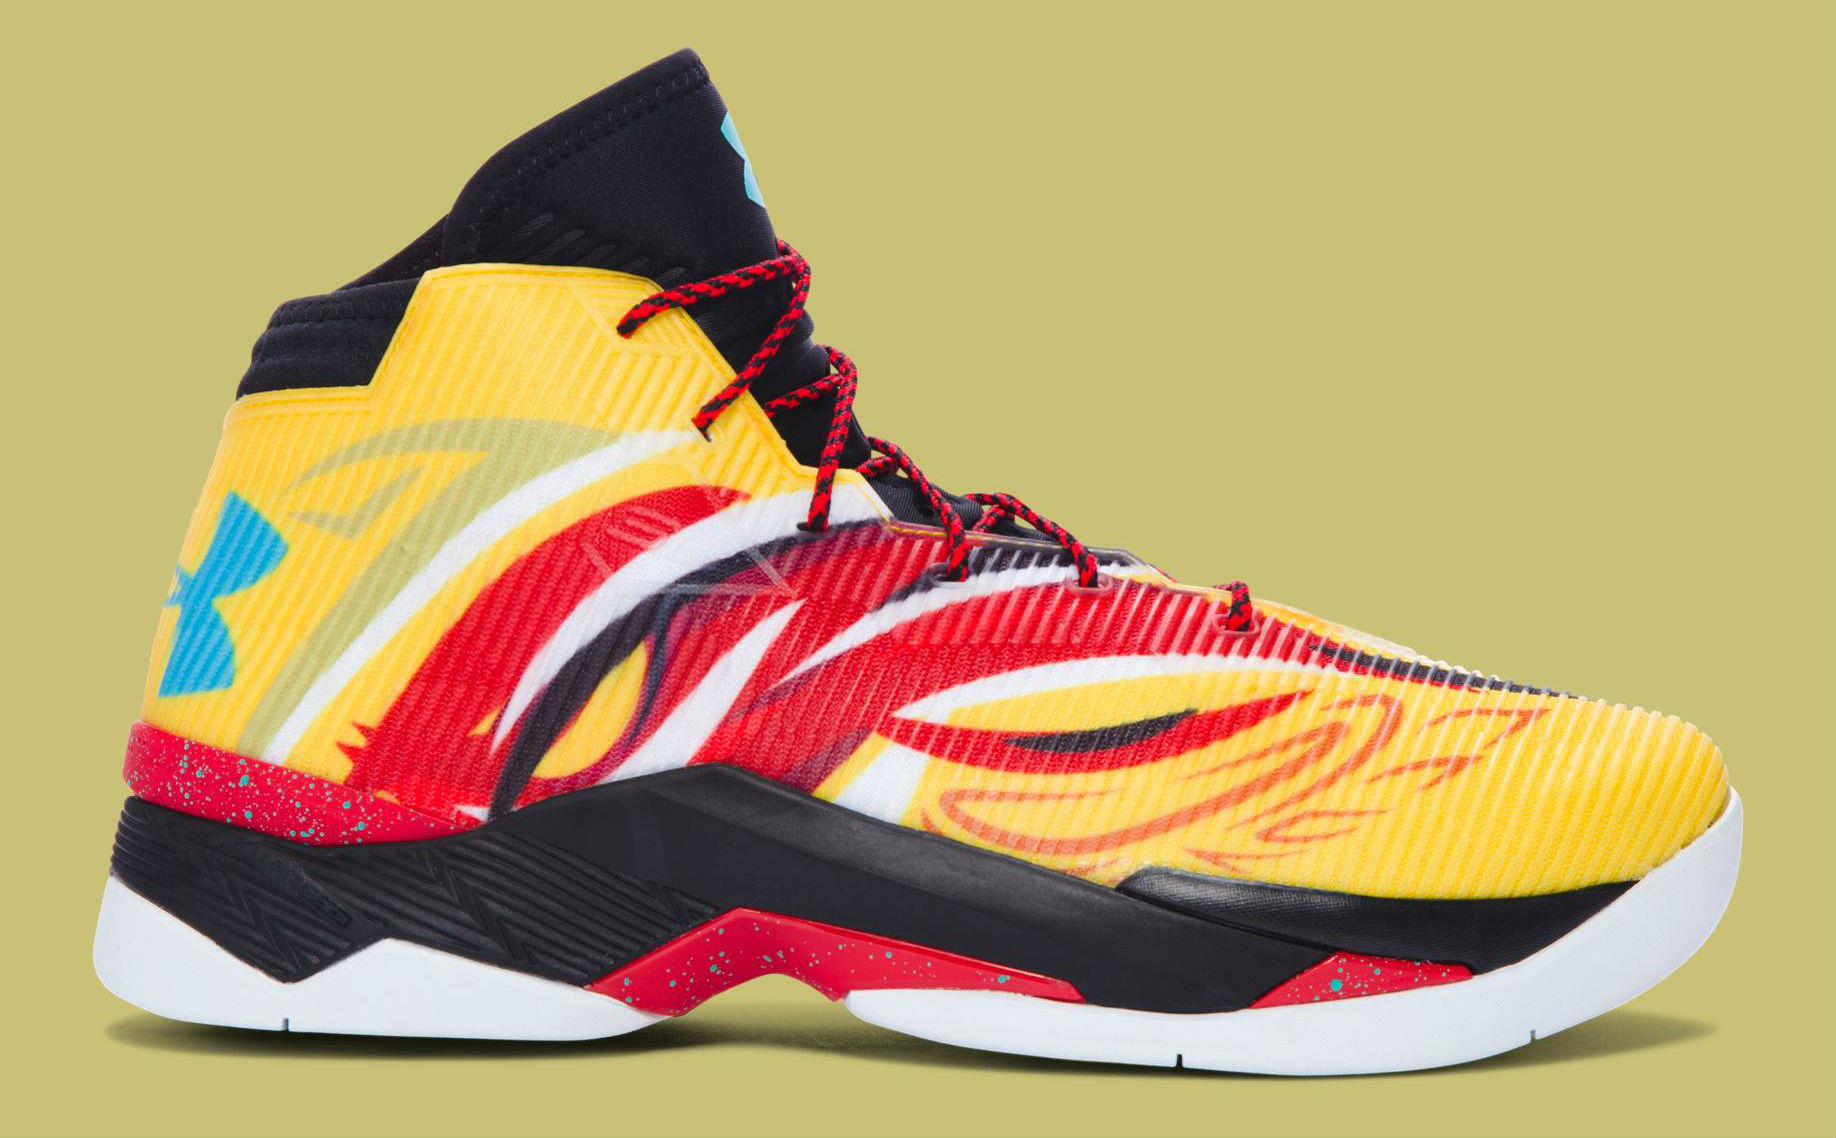 Under Armour Curry 2.5 China Tour Monkey King Side 1288403-750